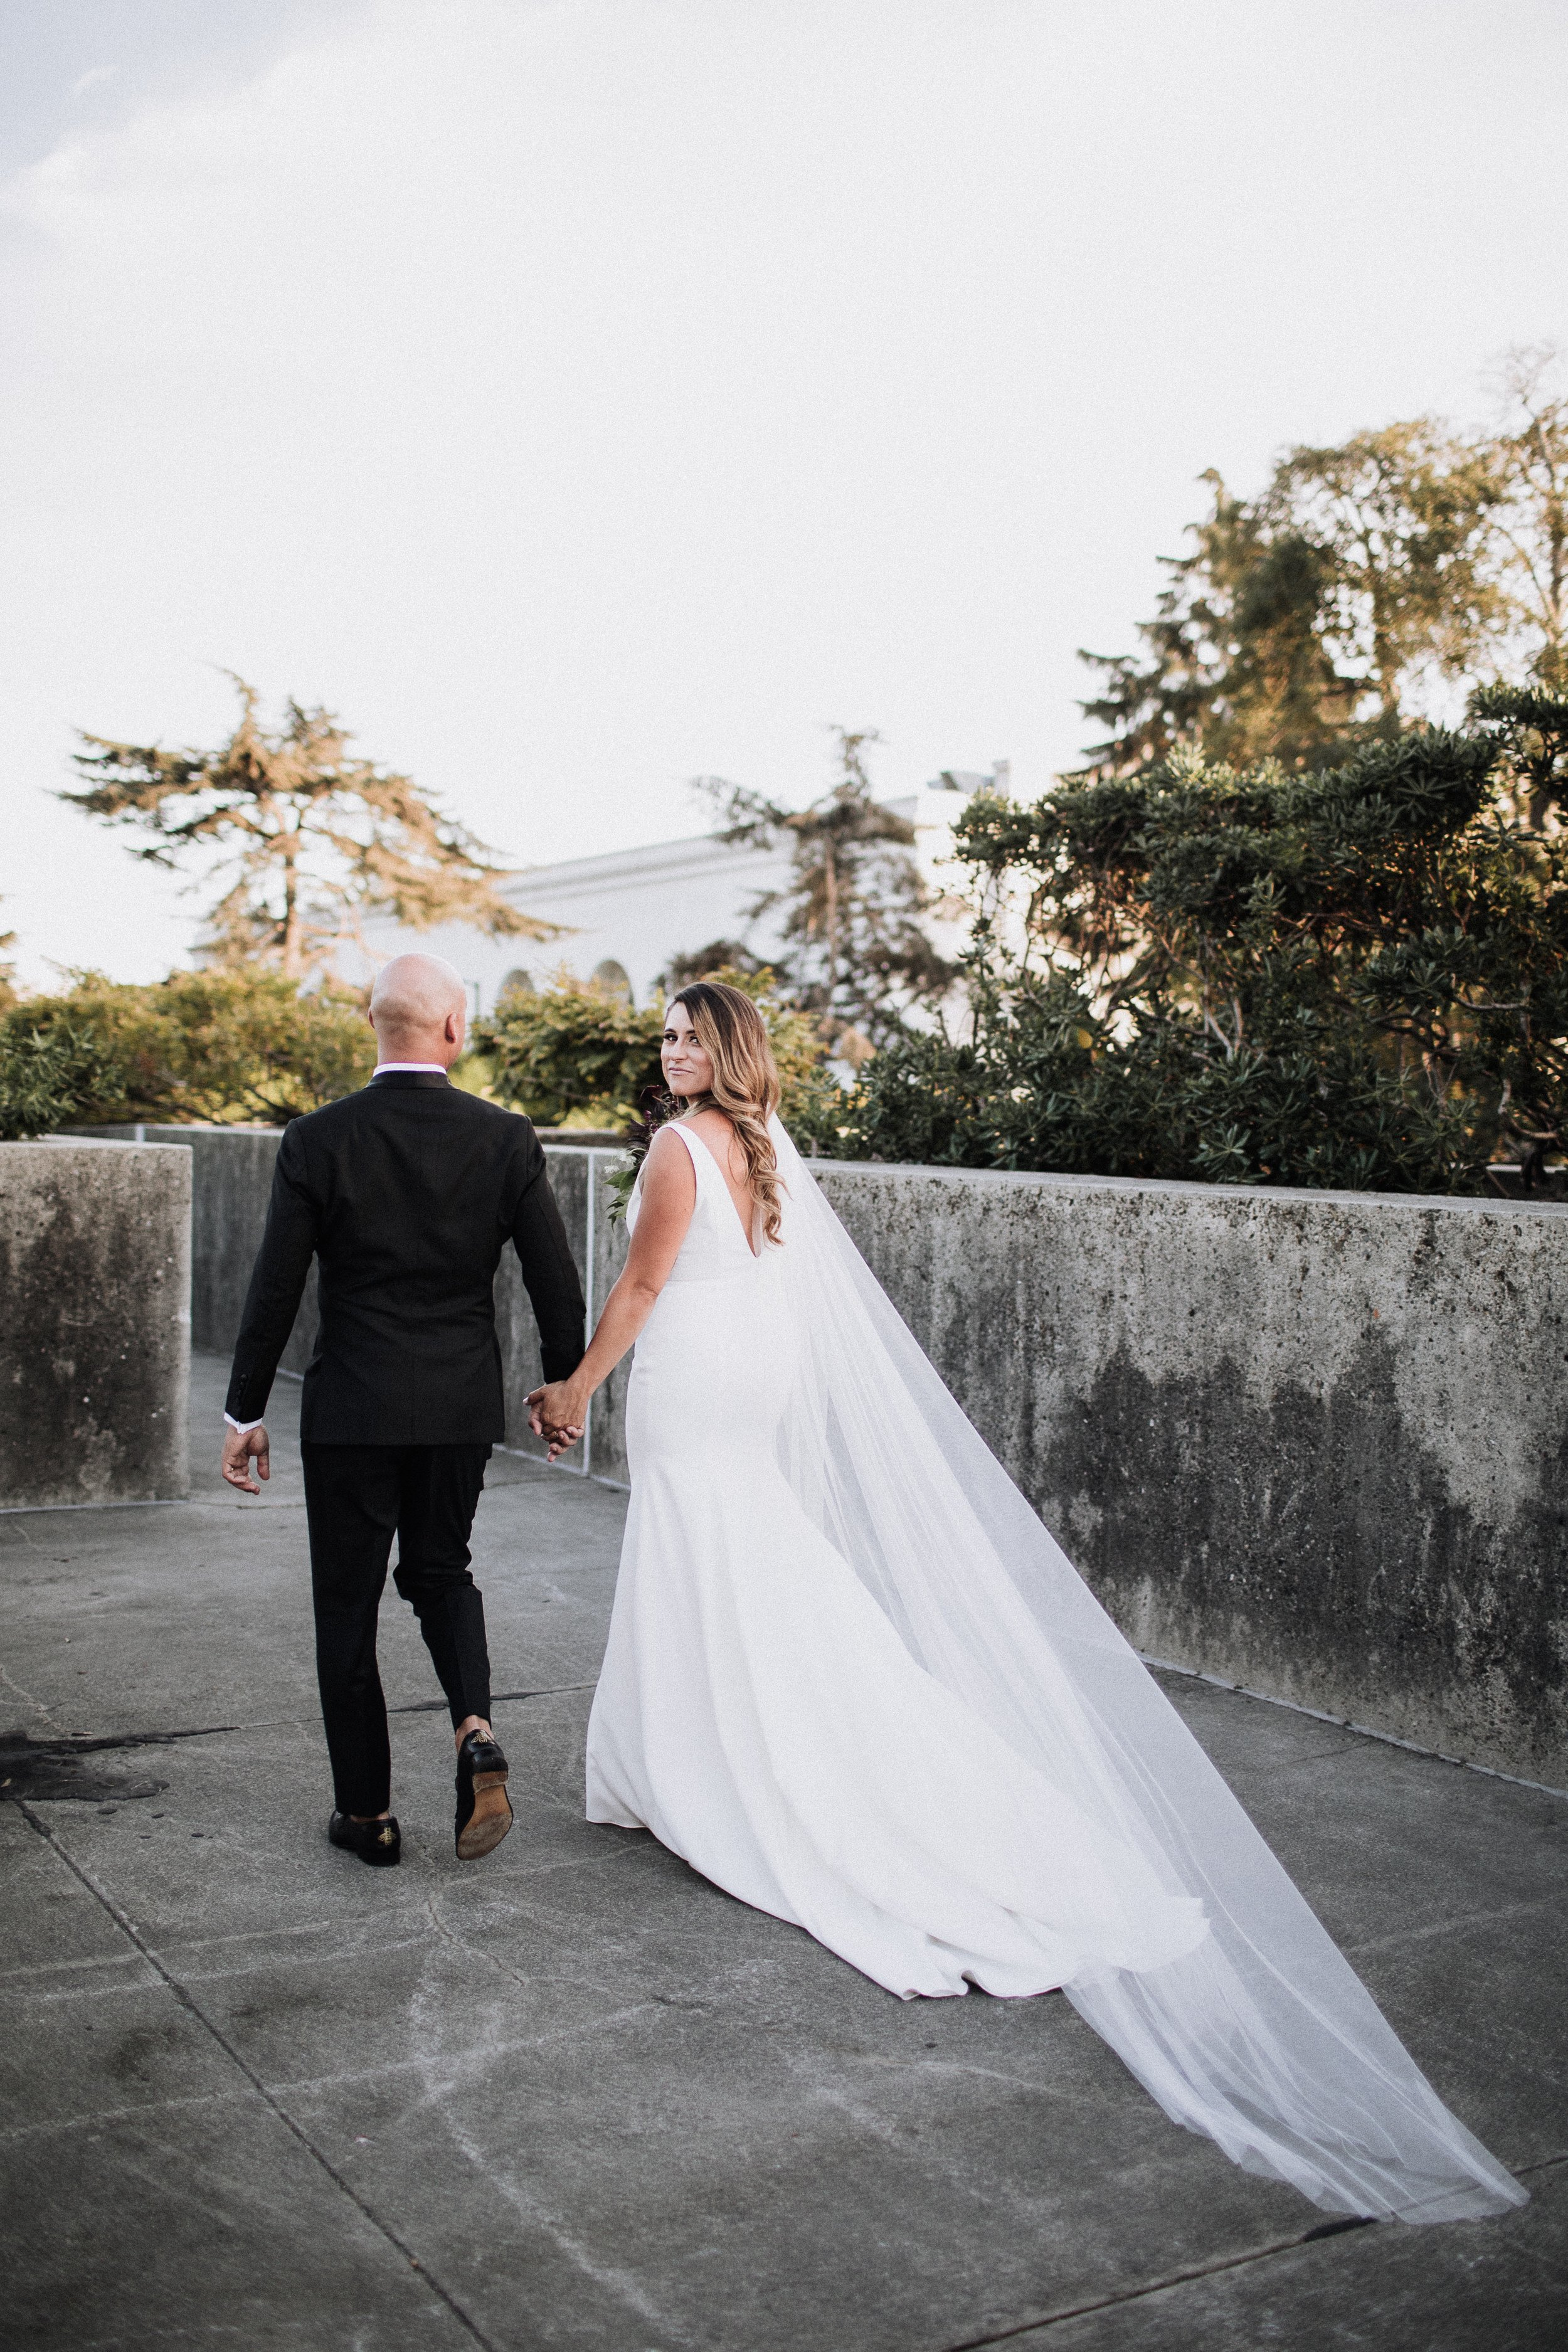 Bride and Groom Walking Holding Hands White Dress Long Train Veil Oakland Museum of California Katie Laines design and Coordination